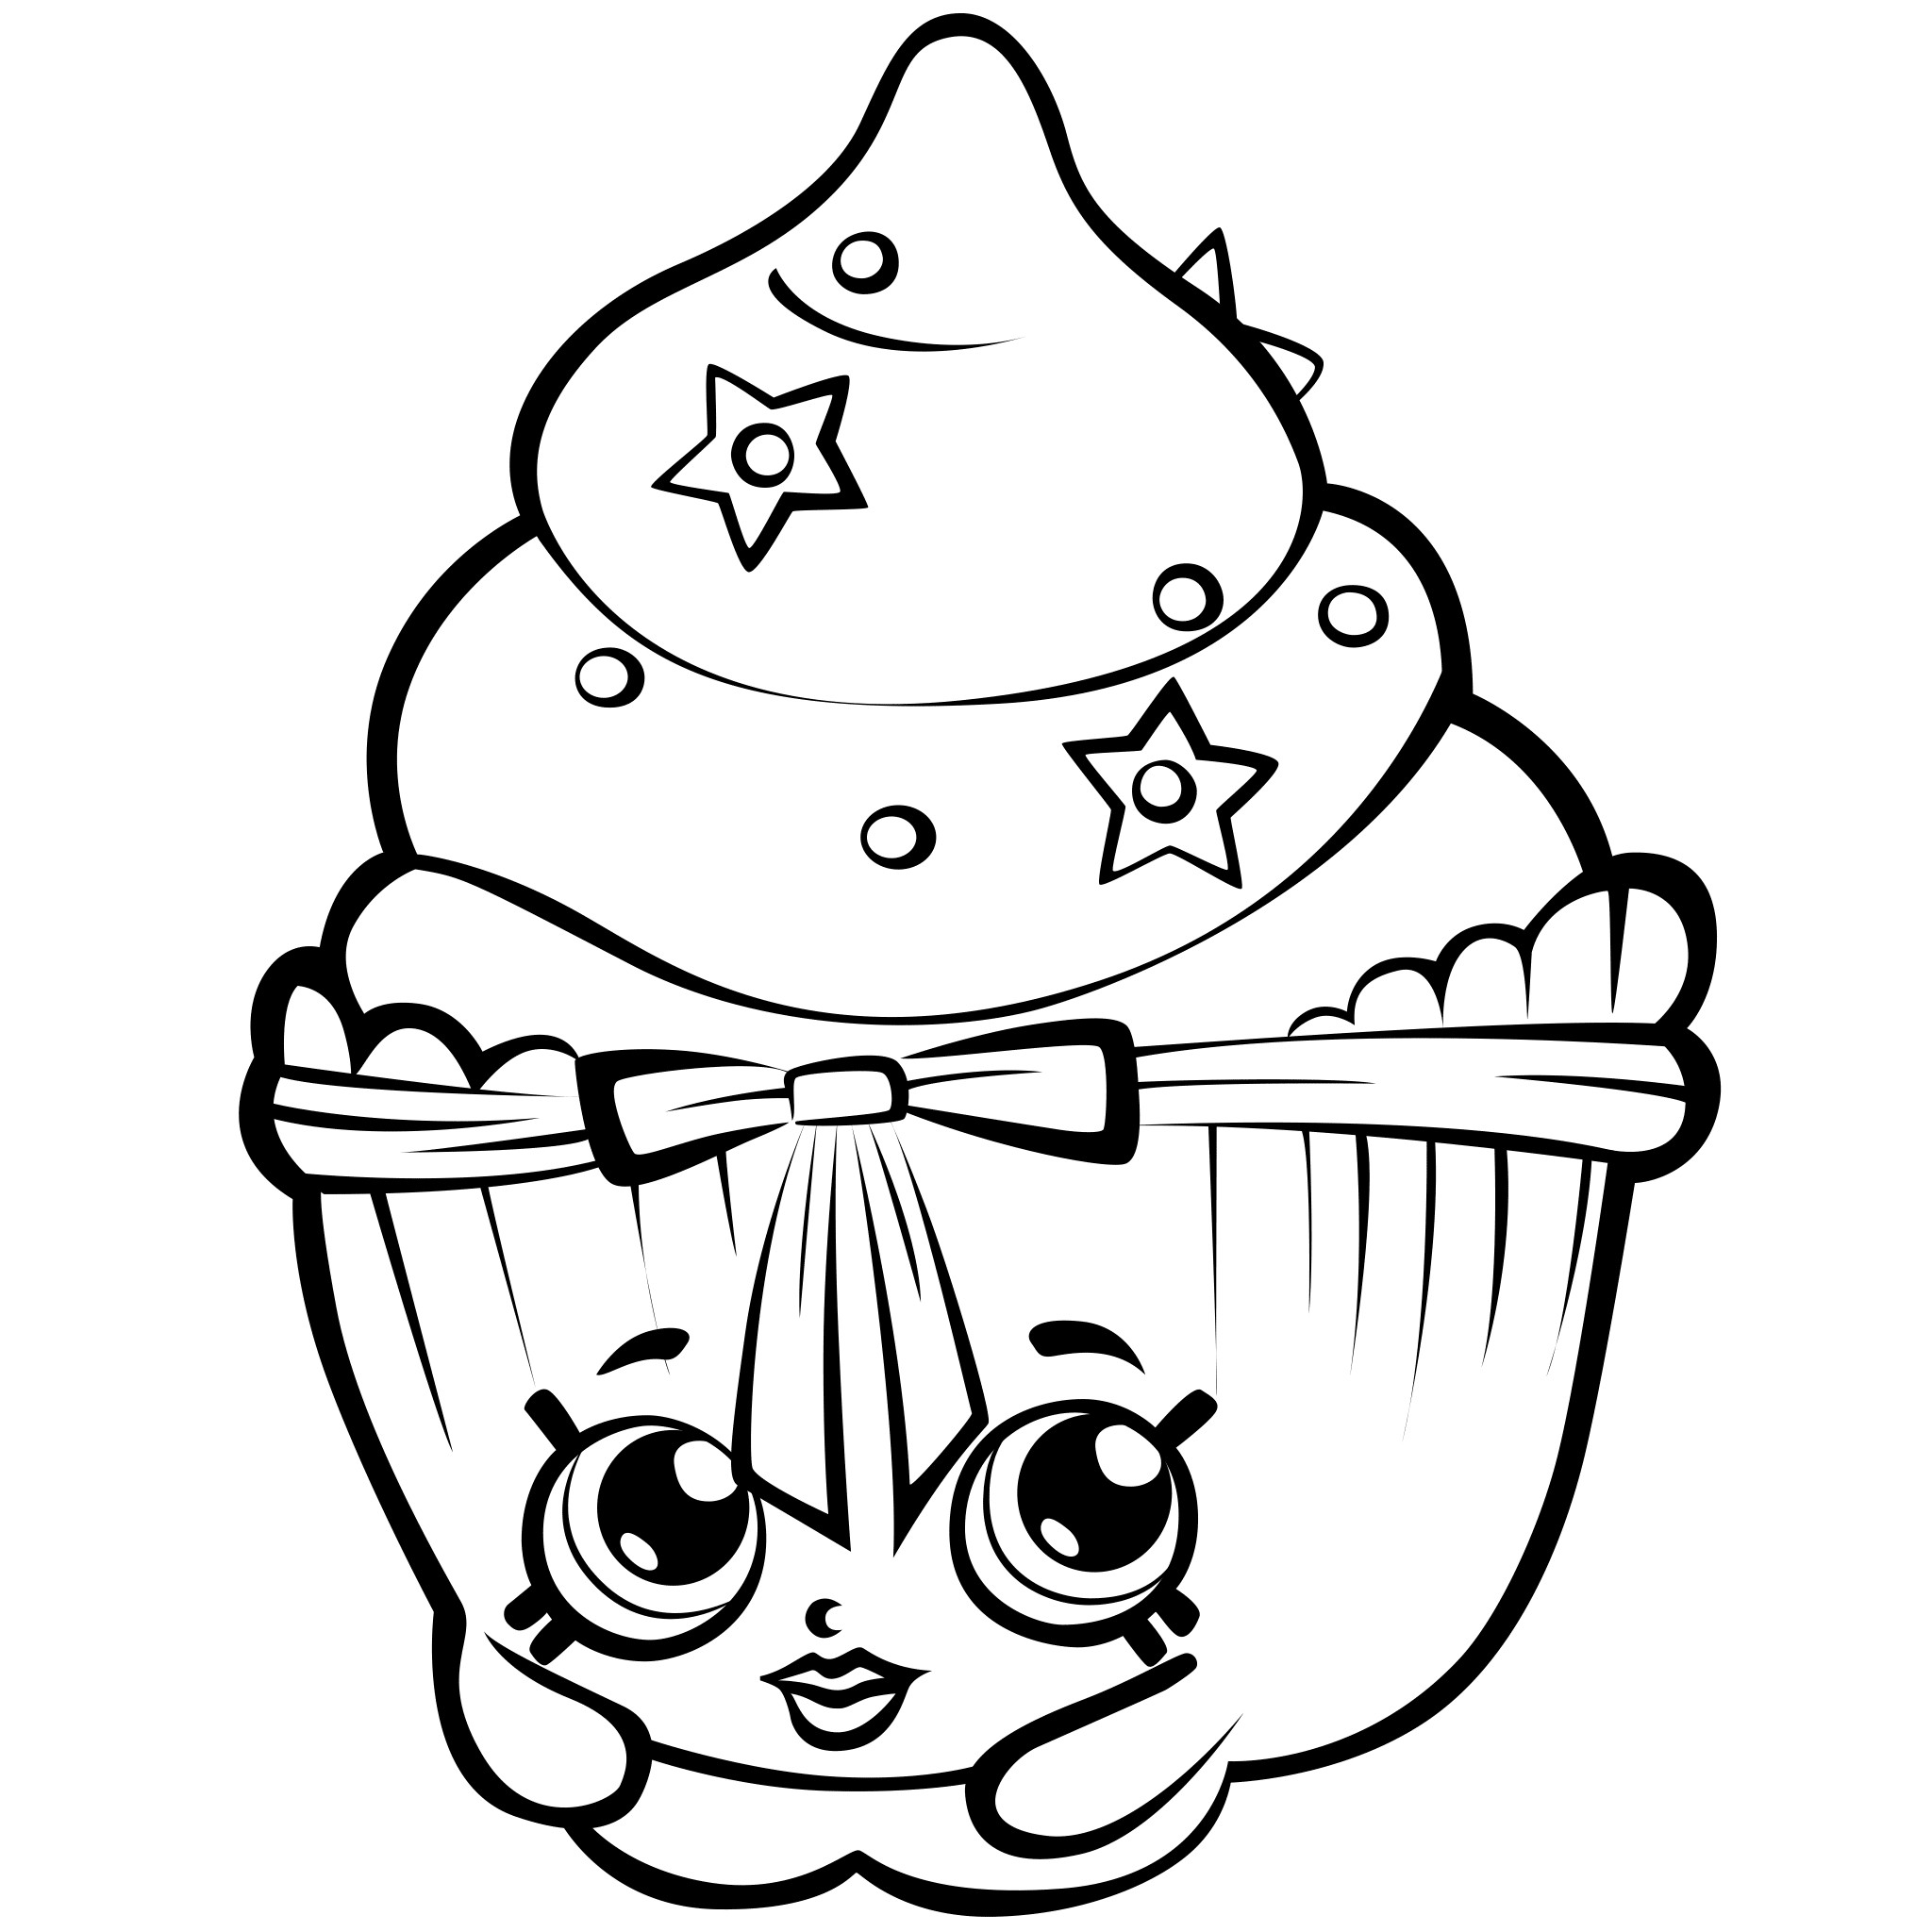 2048x2048 Shopkins Coloring Pages That Are Printable